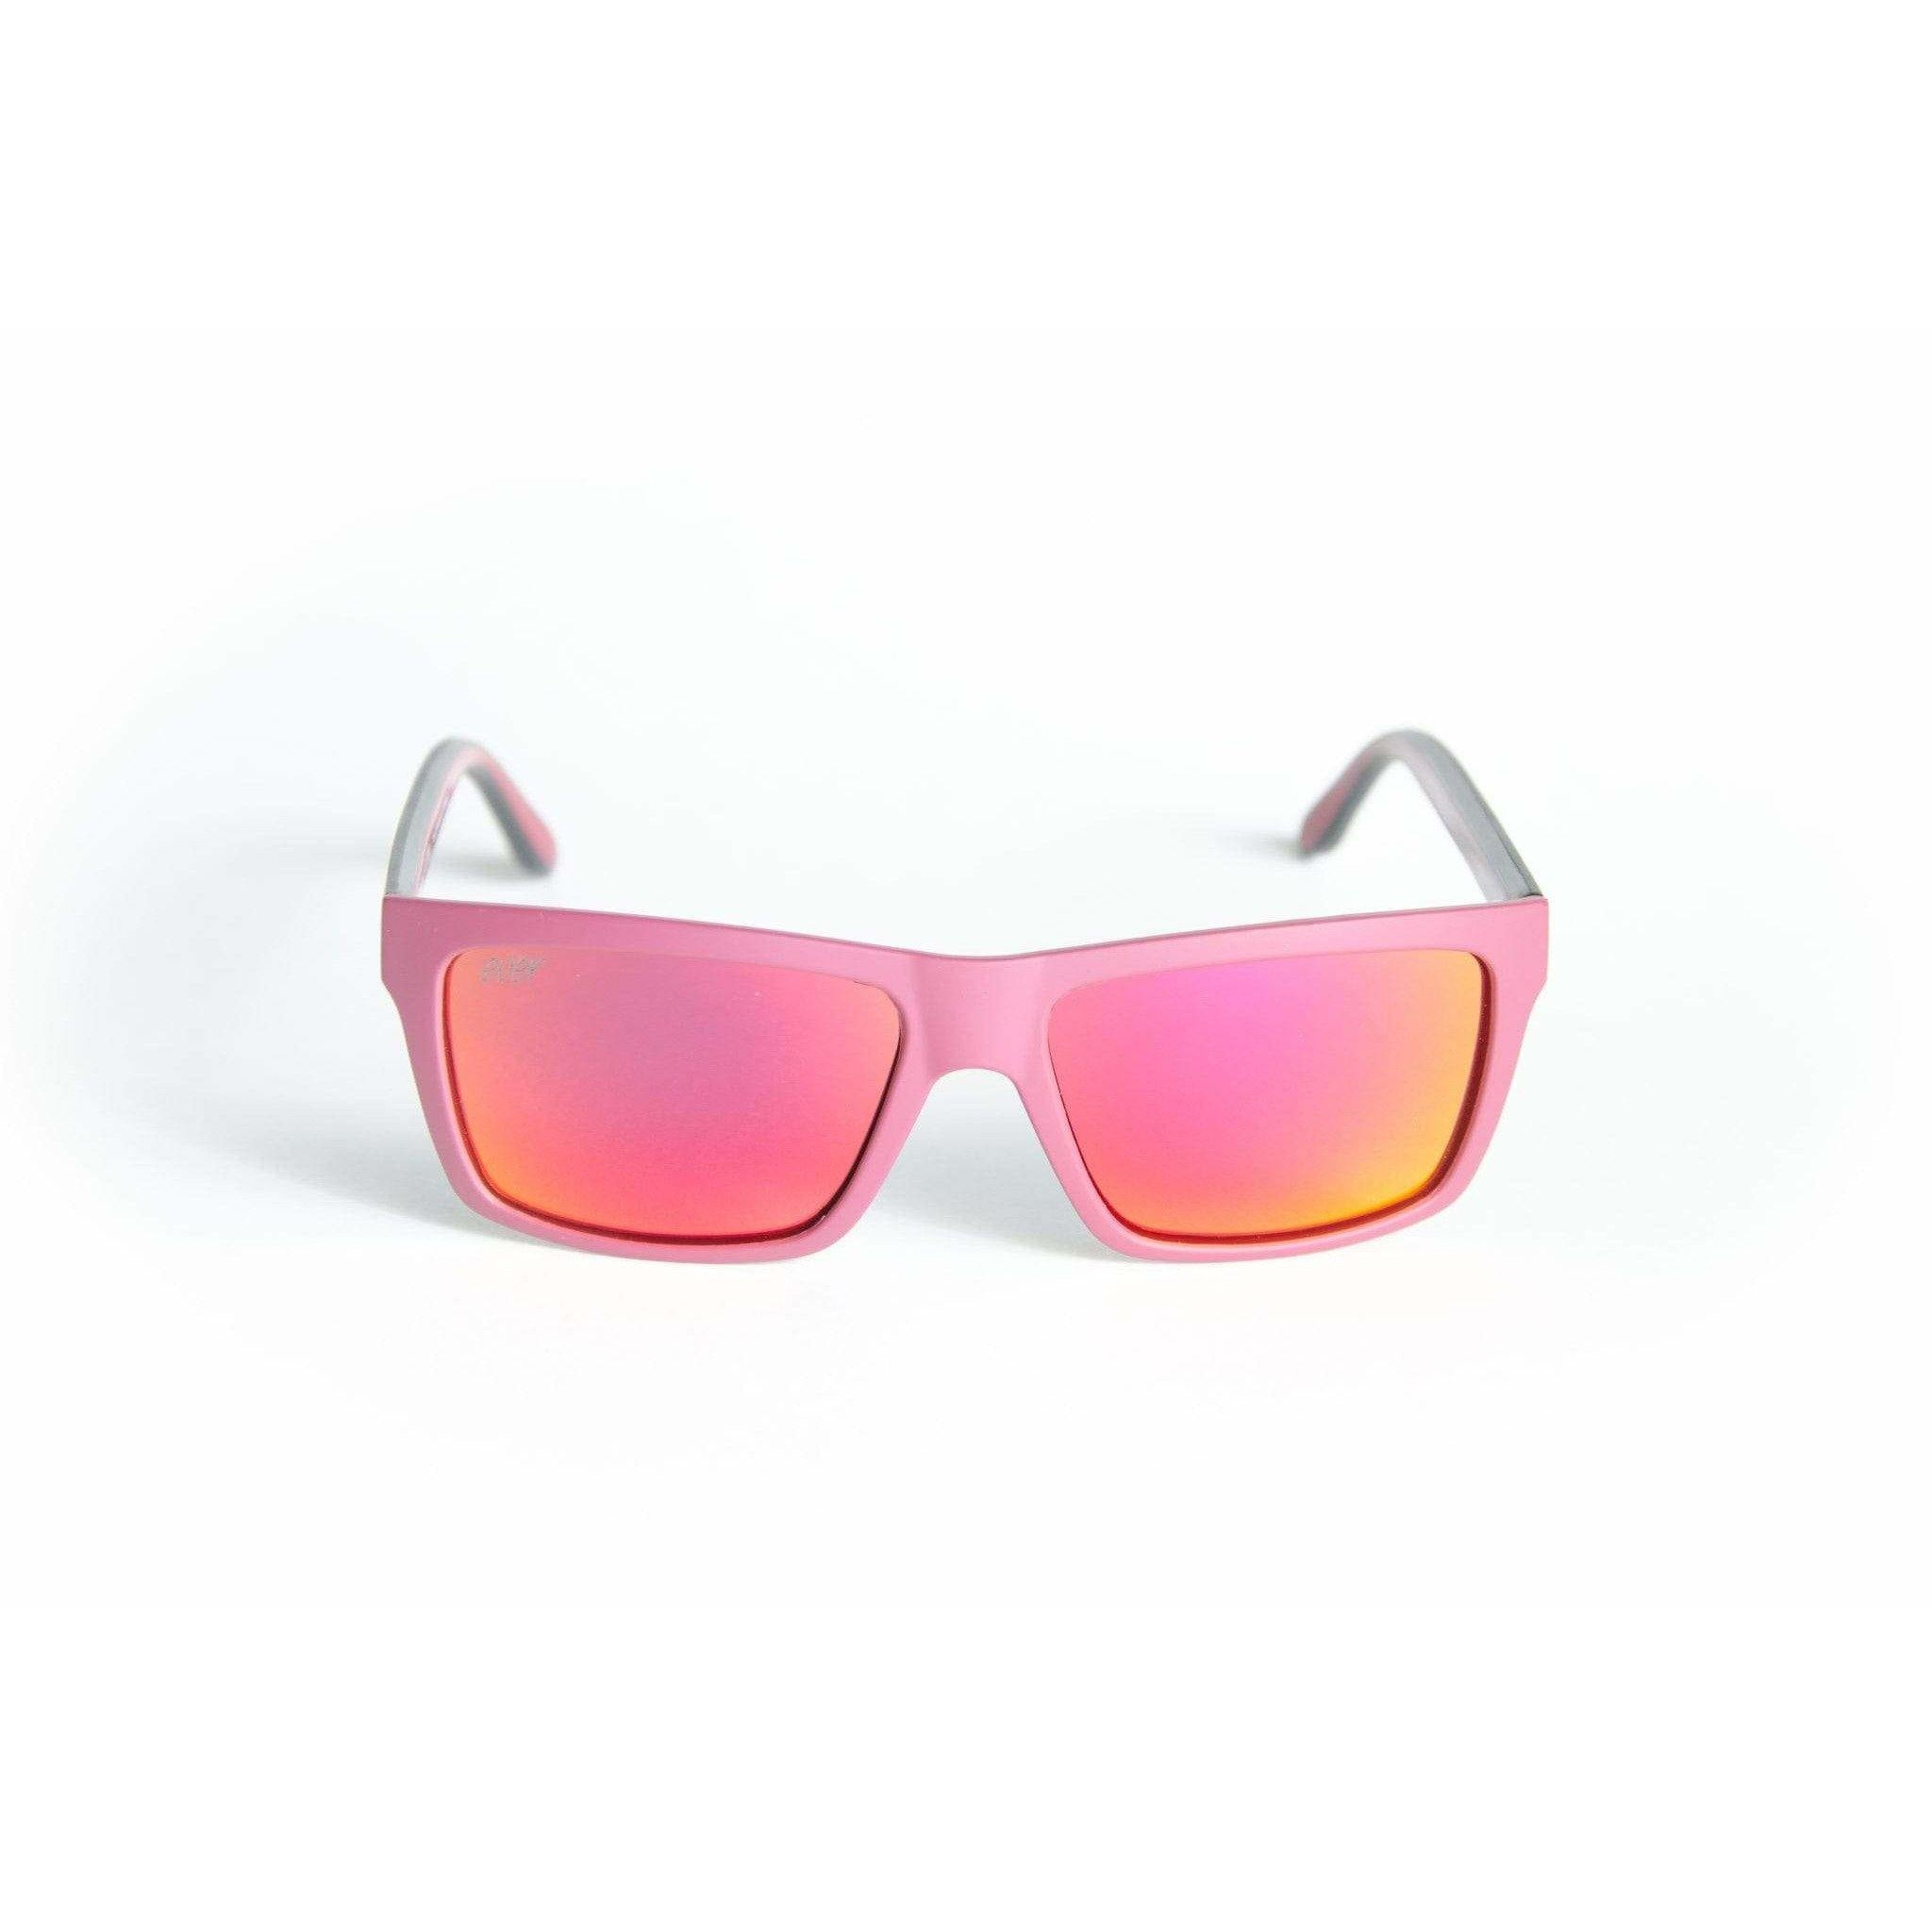 "Sports Sunglasses Designer Sunglasses Model ""Flame On"" By: The Ever Collection"